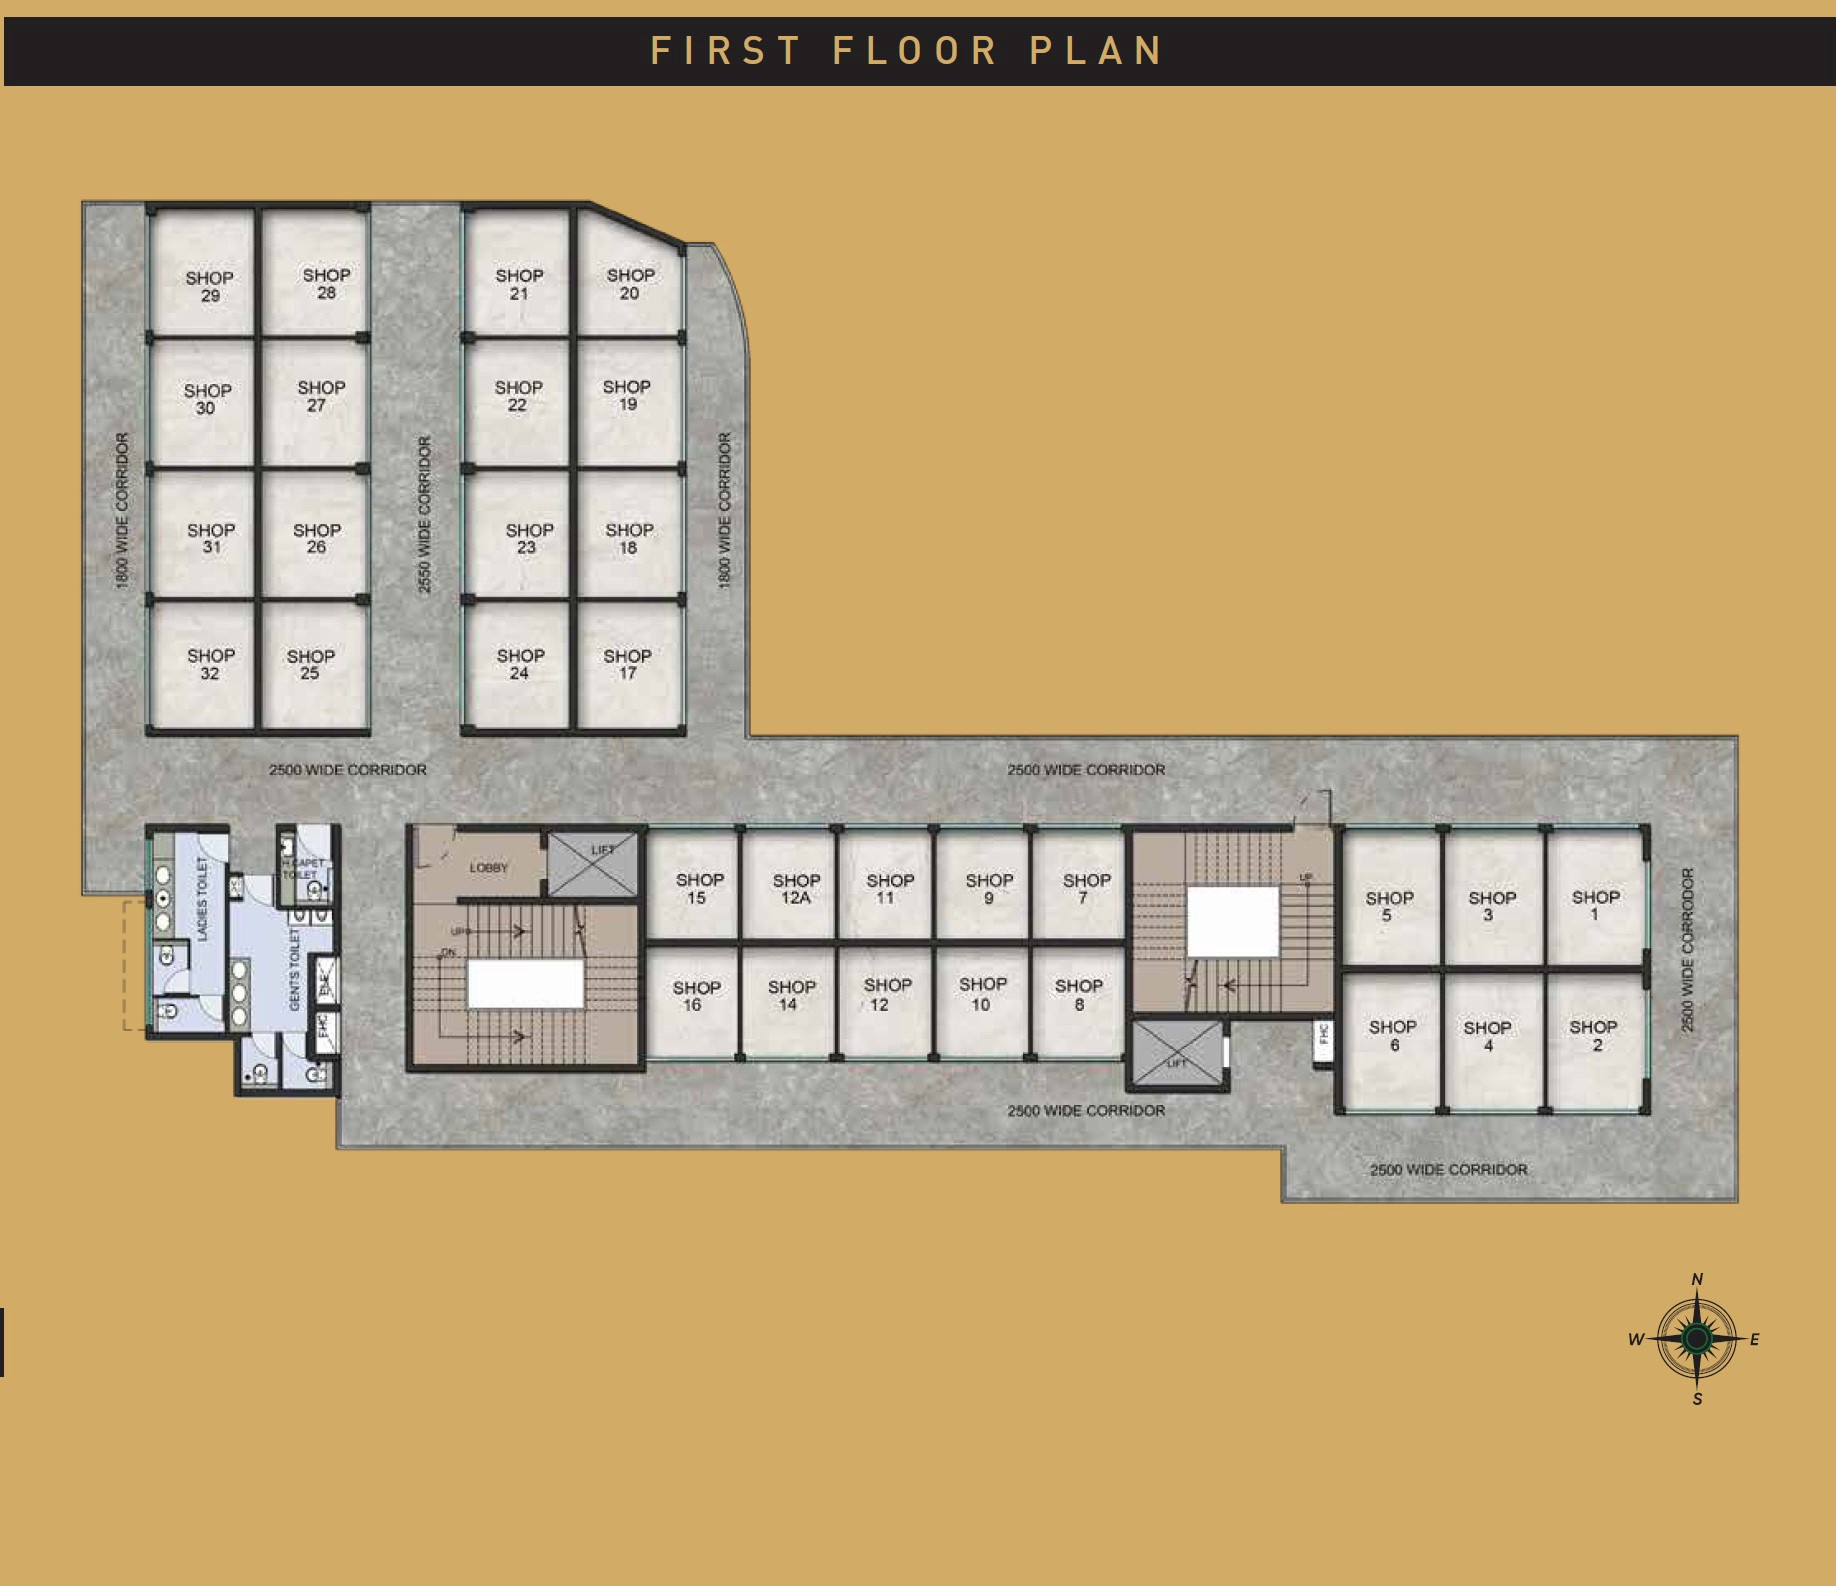 first floor plan for Signature Signum plaza sector 63a Gurgaon